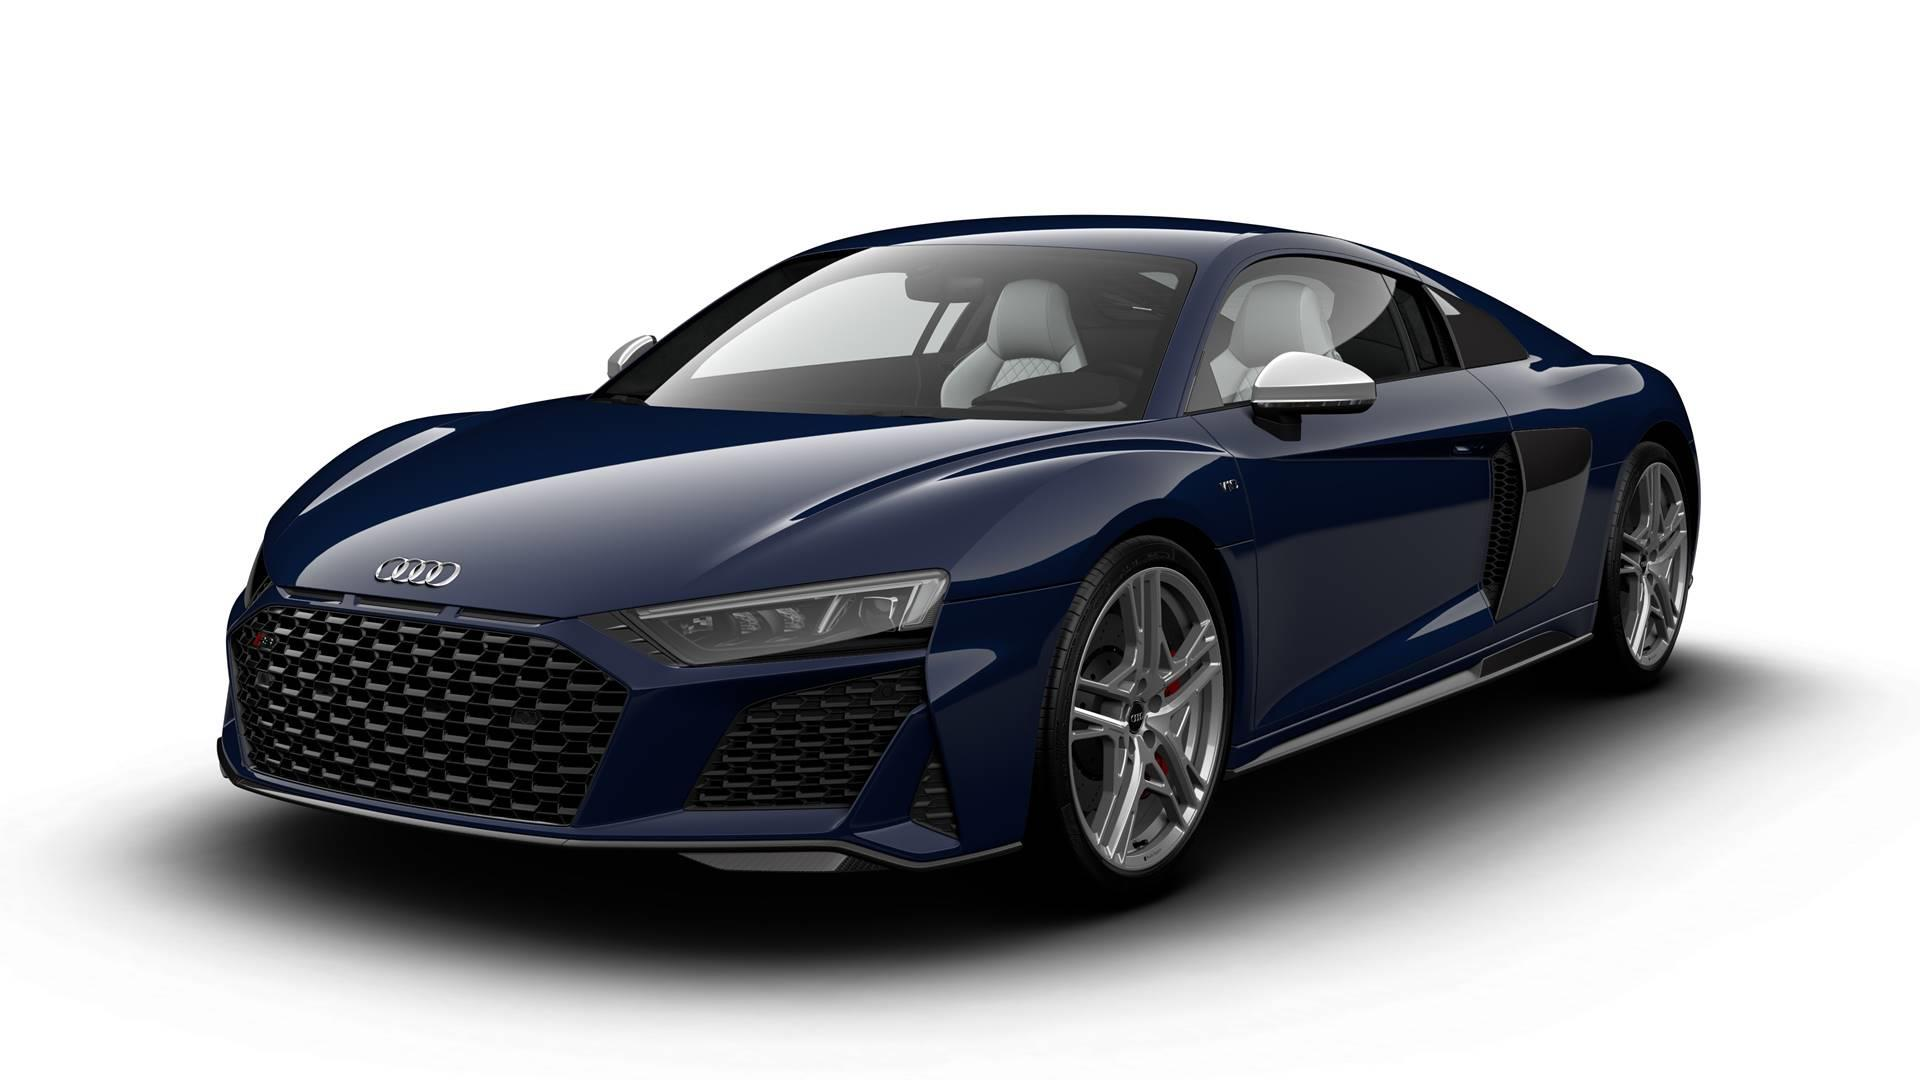 2021 audi r8 v10 limited edition news and information